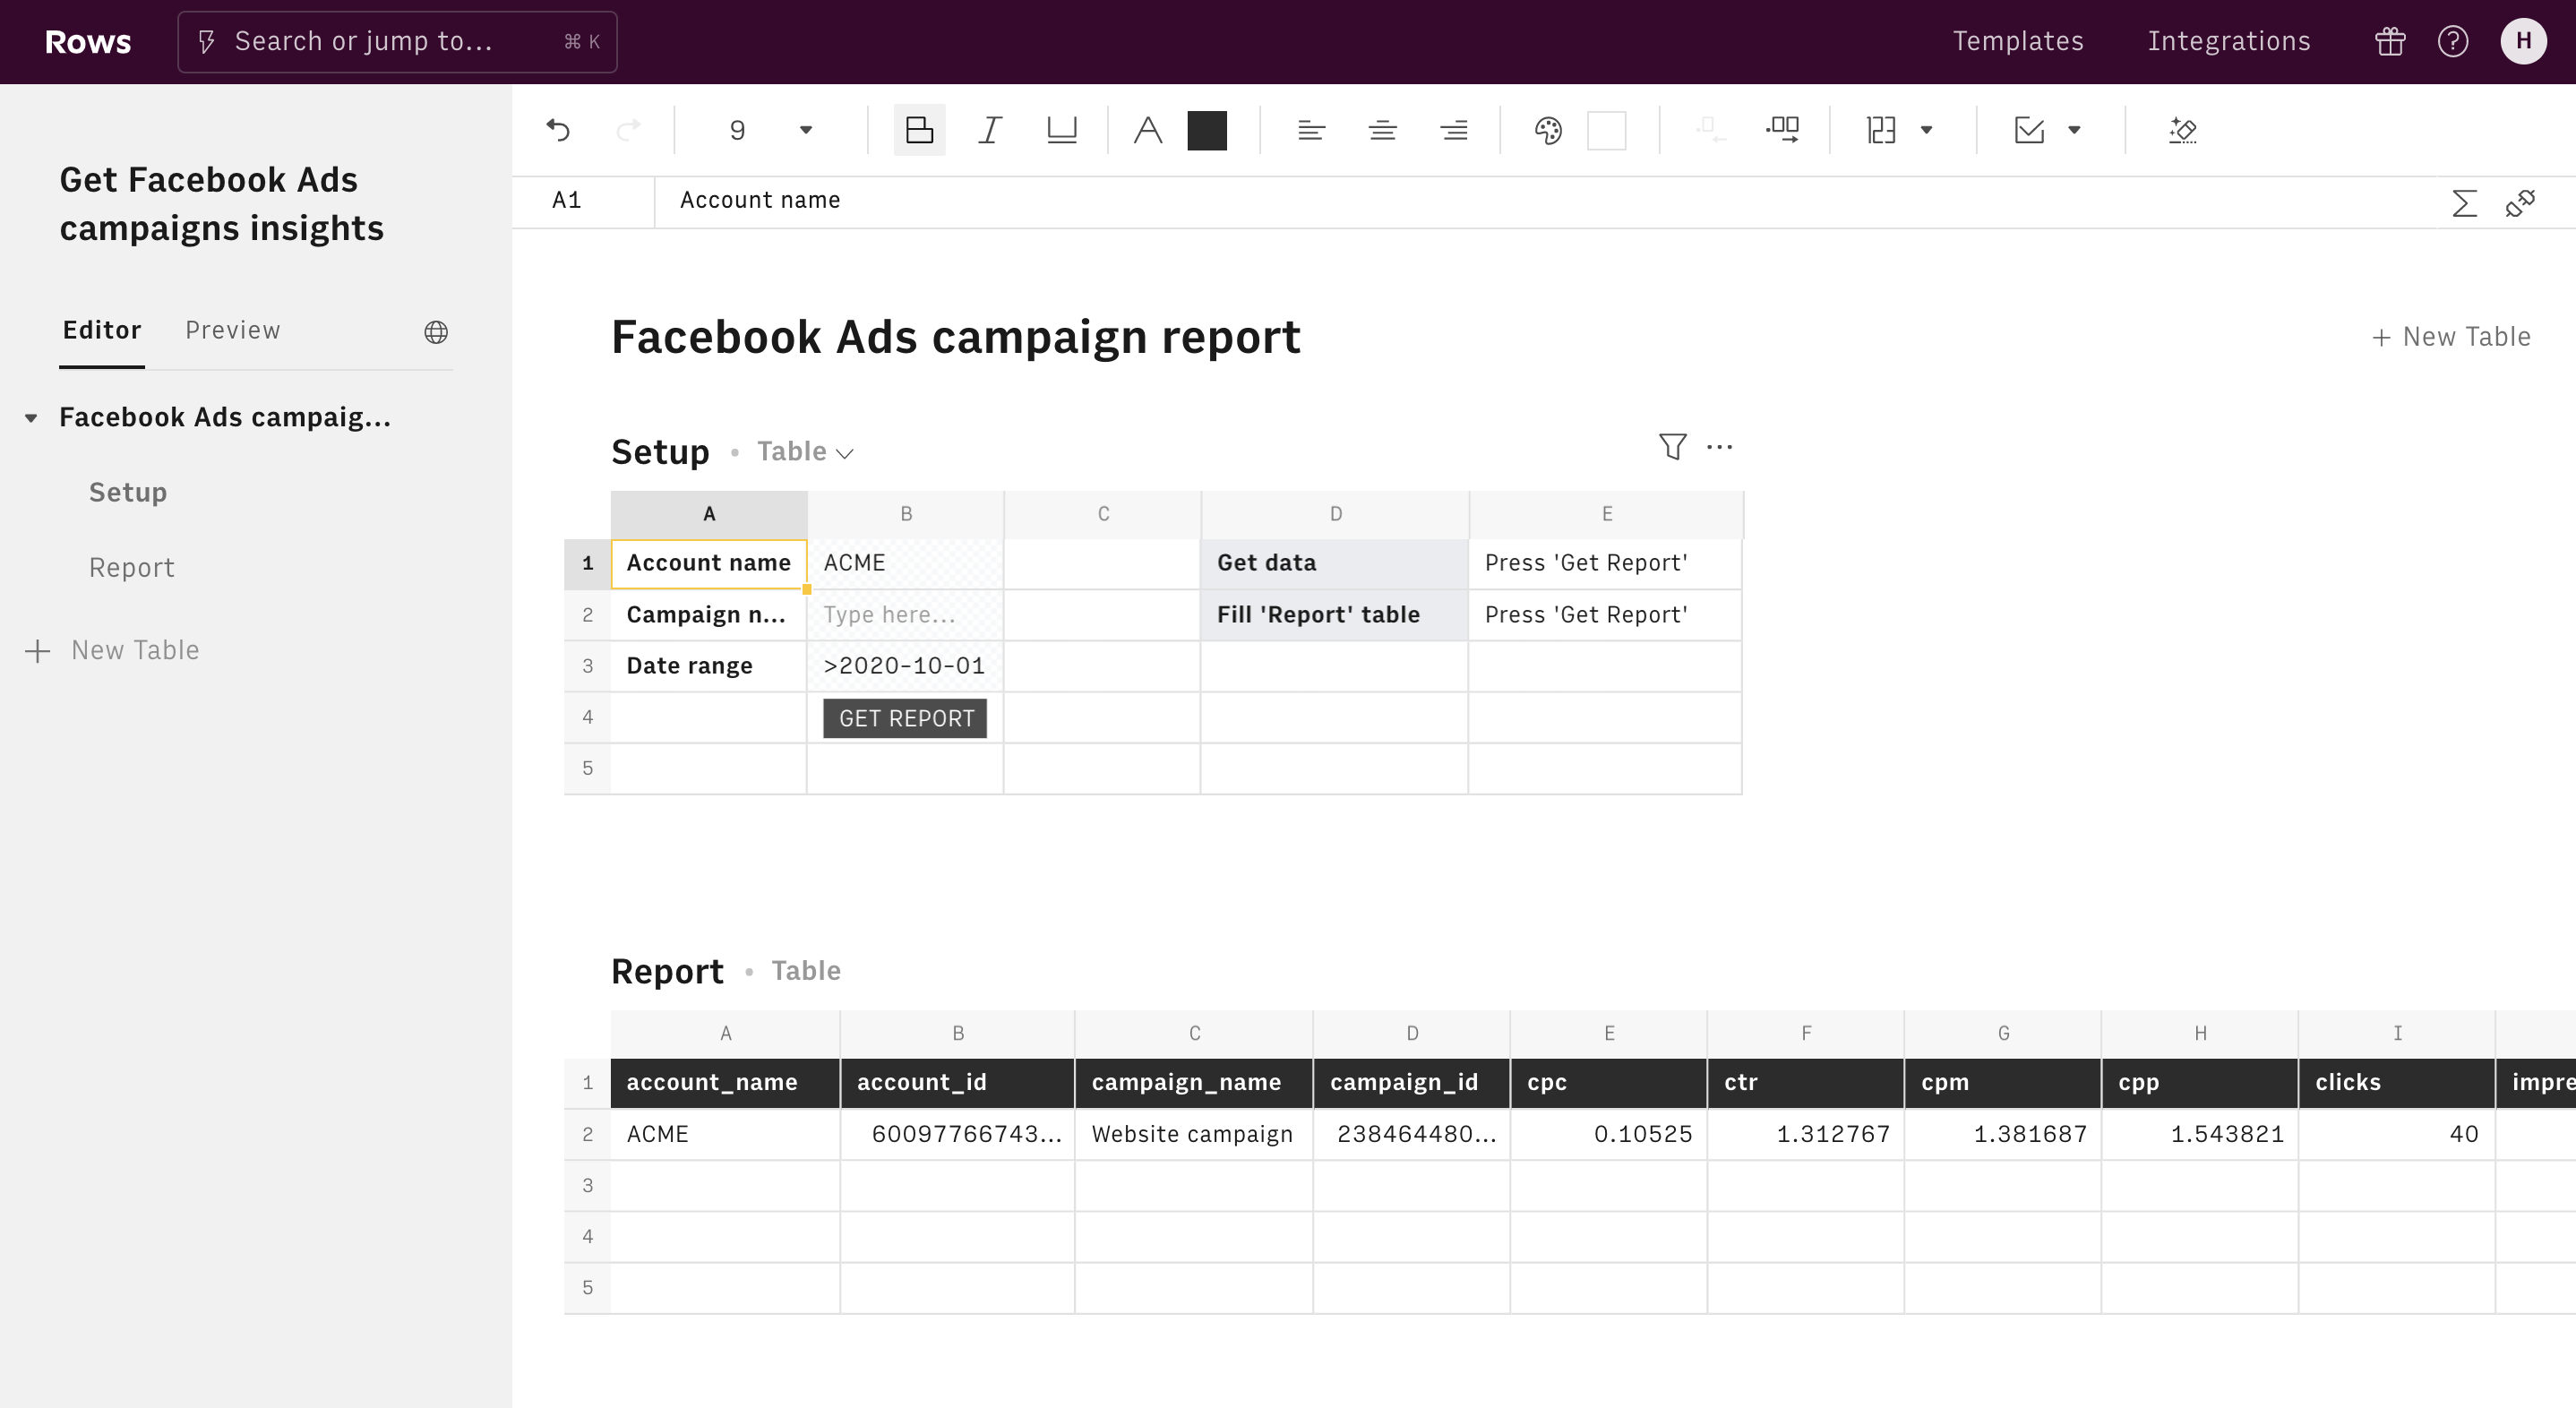 Get Facebook Ads campaigns insights editor 1